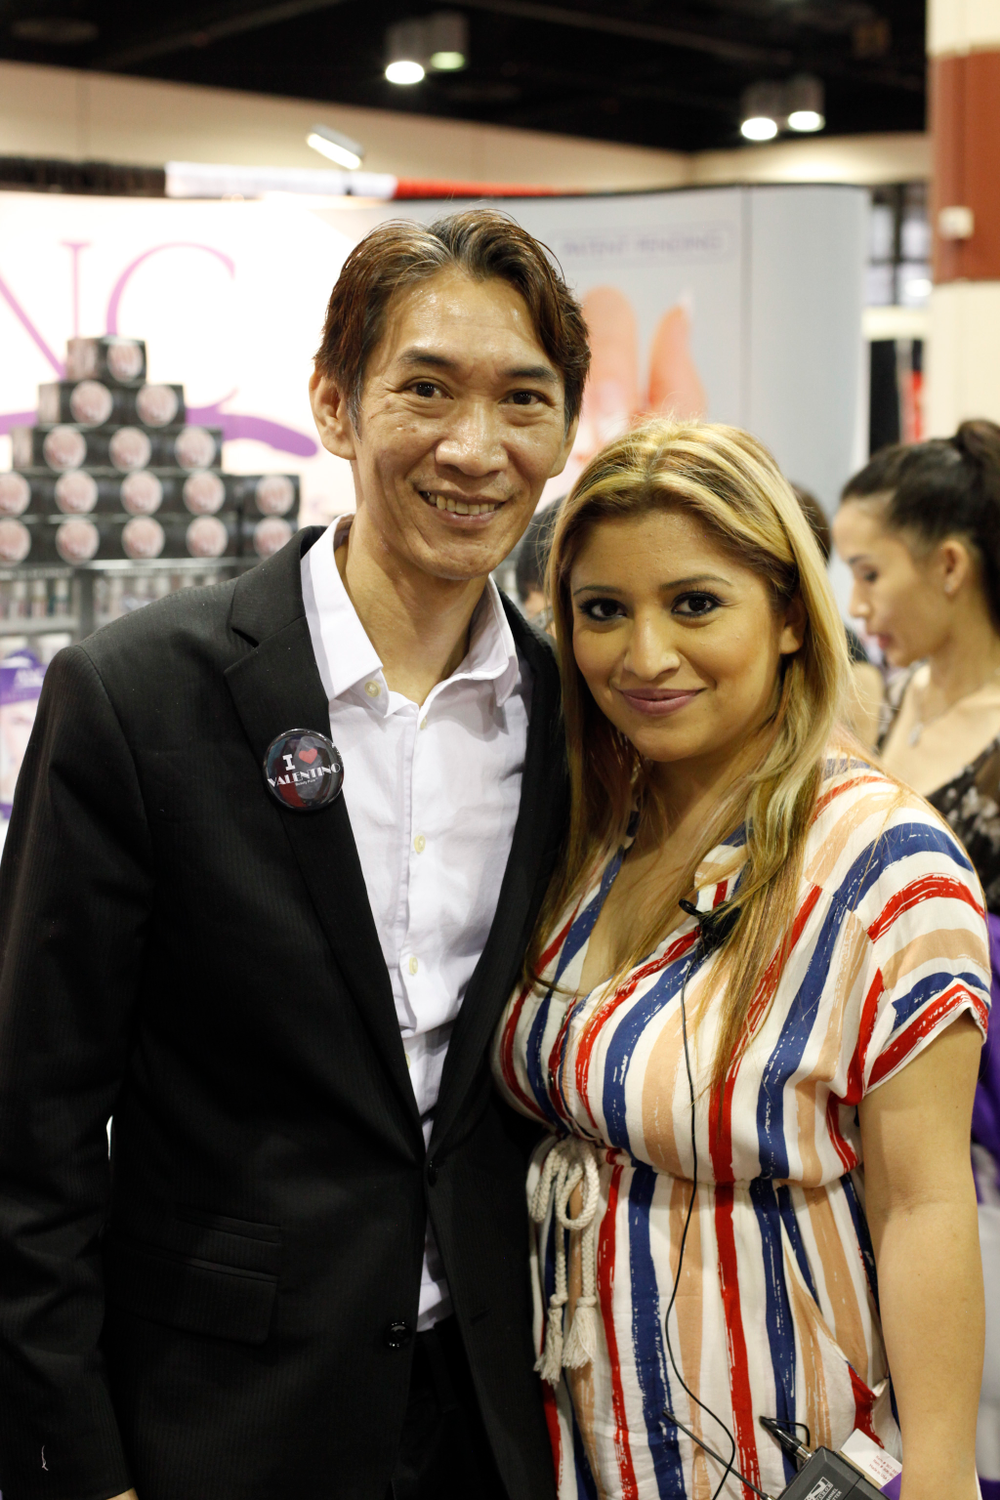 <p>Entity Beauty&rsquo;s Joseph Pham visited Amazing Nail Concepts&rsquo; booth with ANC educator Roxy Carillo.</p>